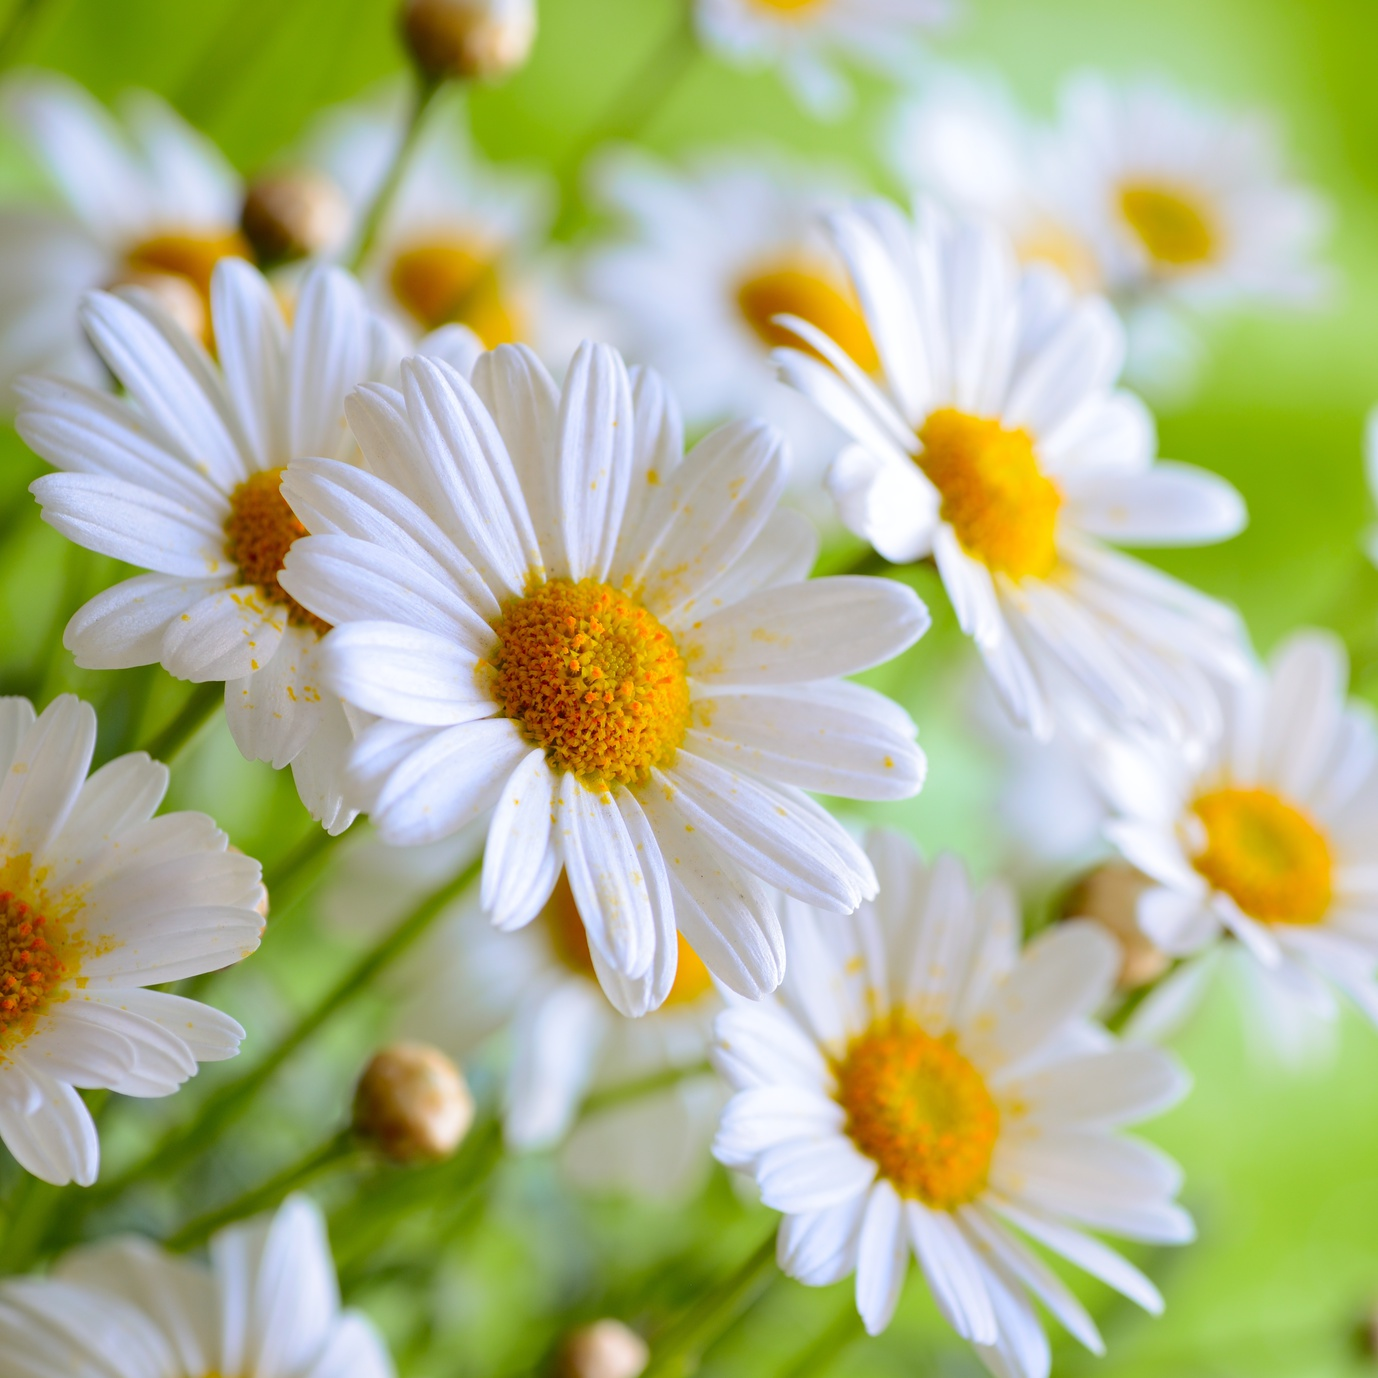 Green valley floral fun facts about the tulip and daisy flower flowers are given for many reasons the beauty and smell of a flower has been proven to improve ones mood it can be given as a sign of love or friendship izmirmasajfo Choice Image